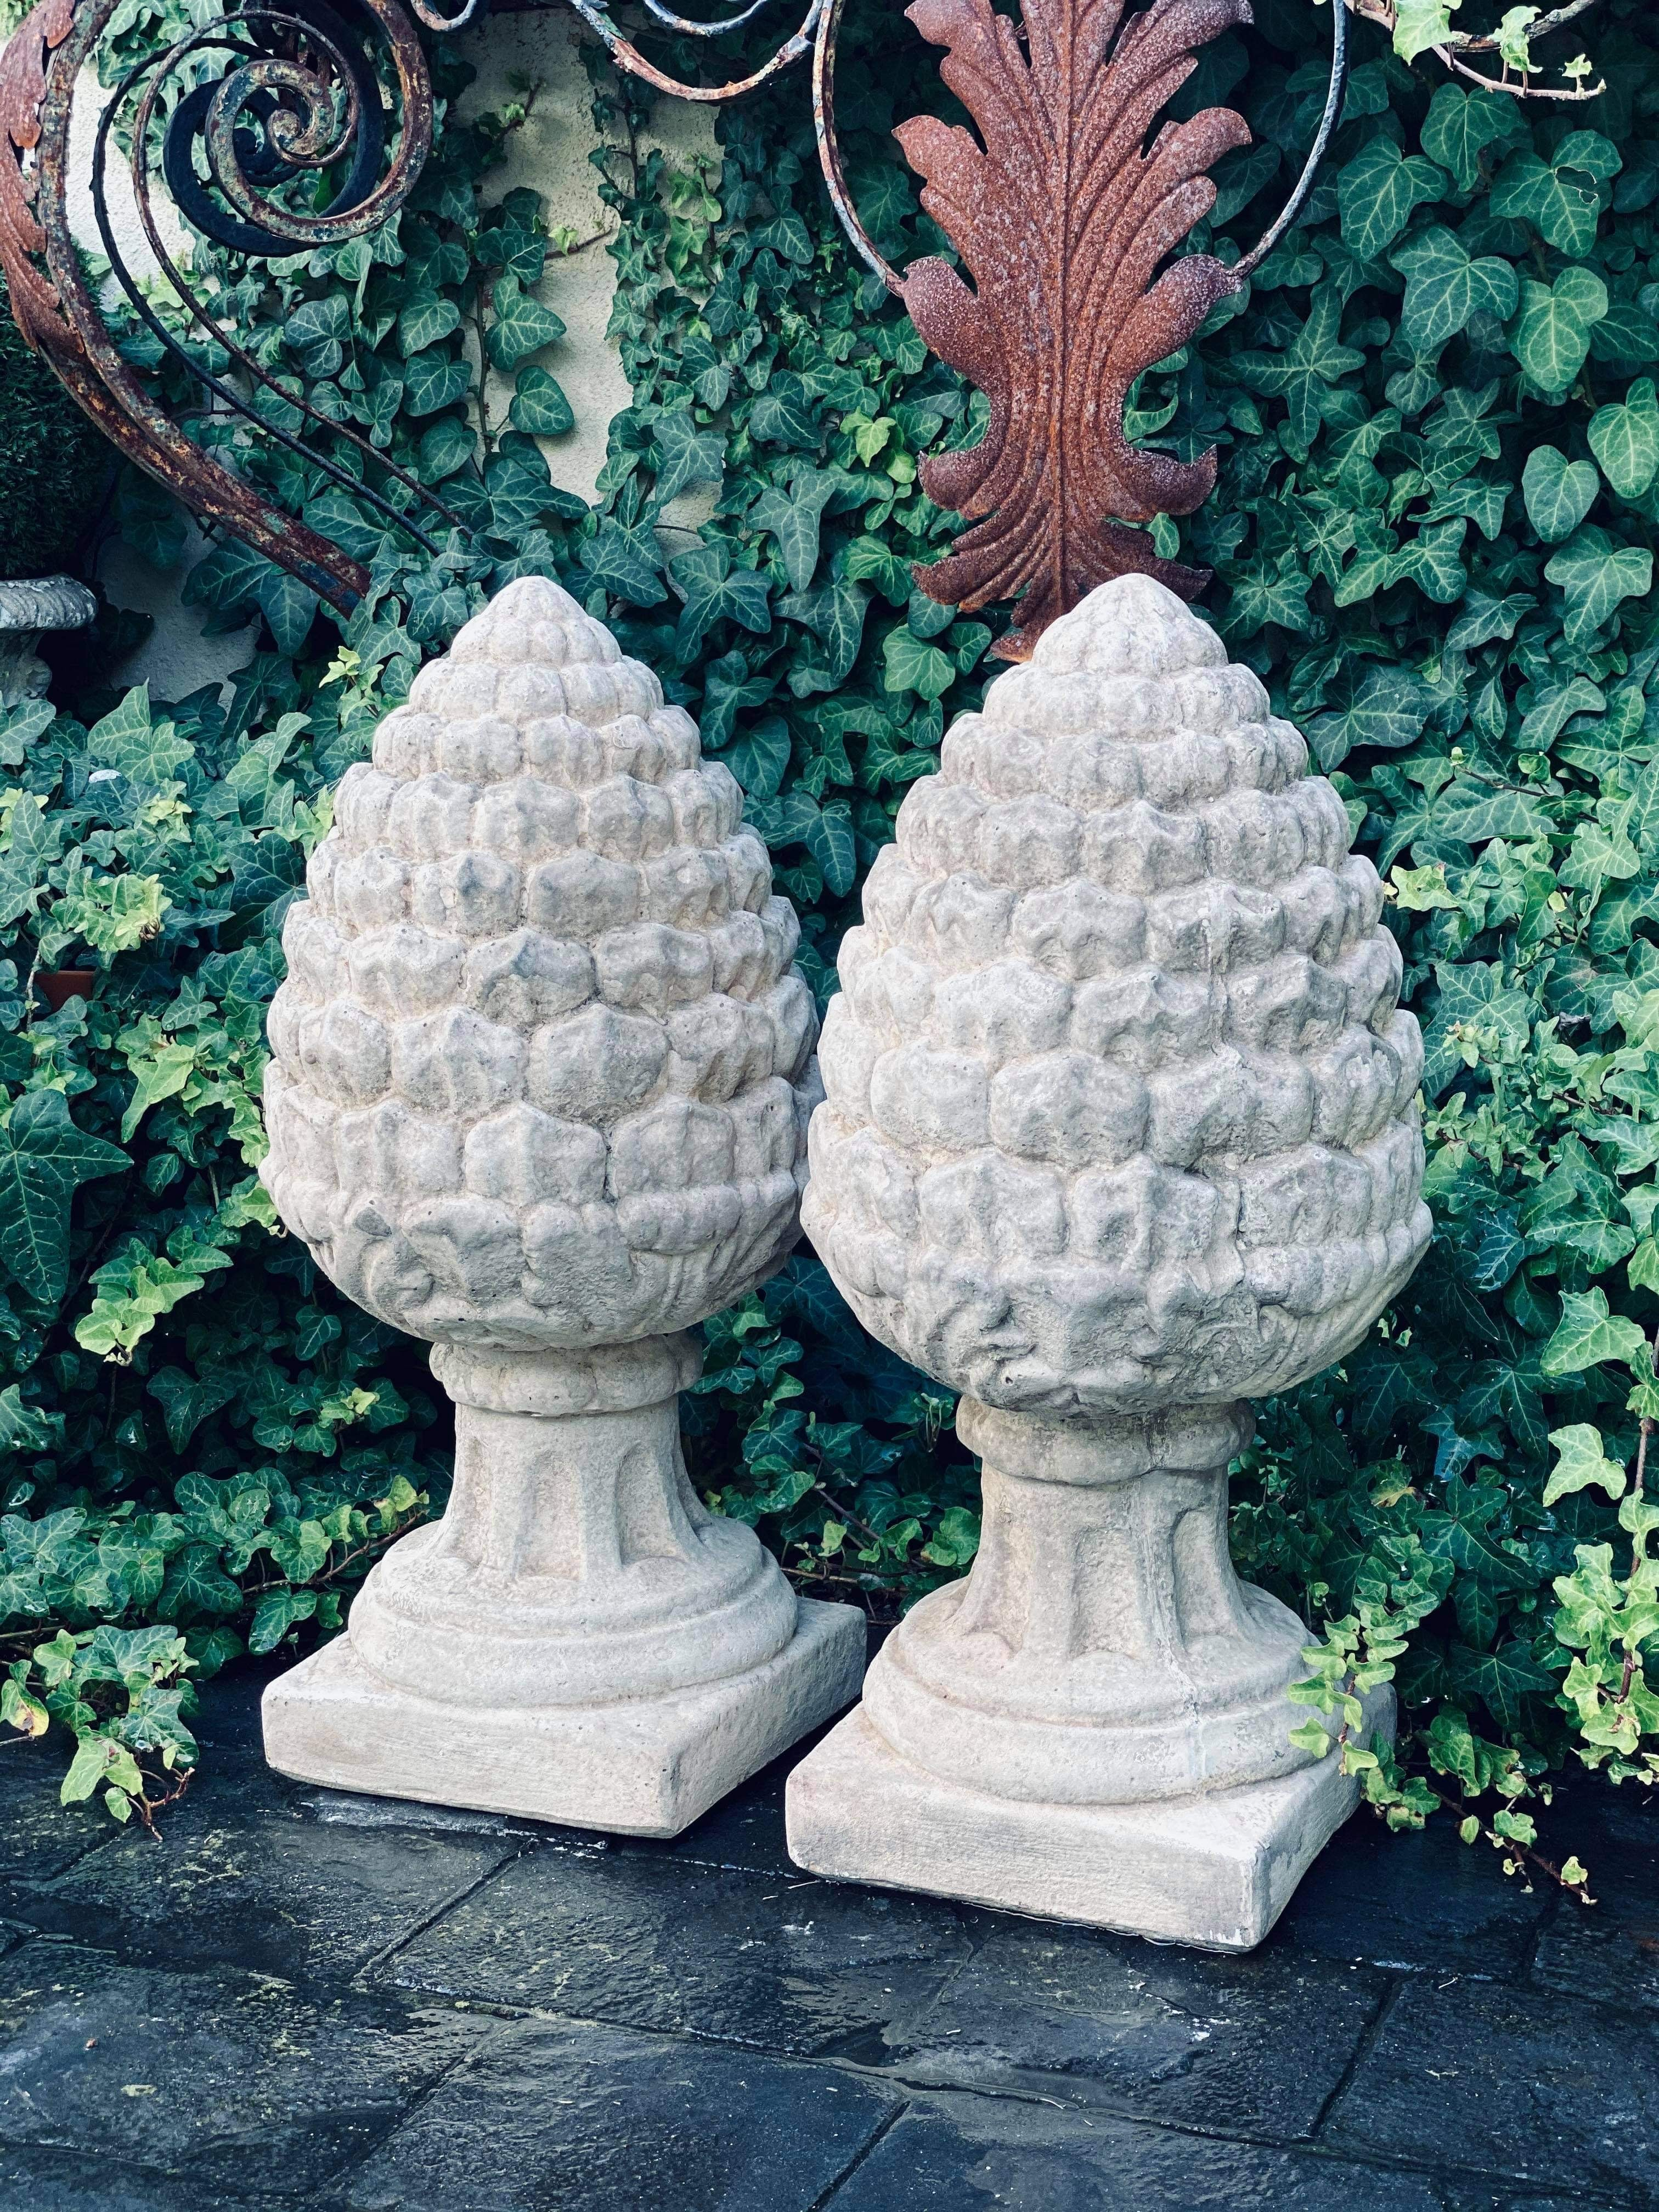 Concrete Acorn / Pinecone Finial - Pair Available